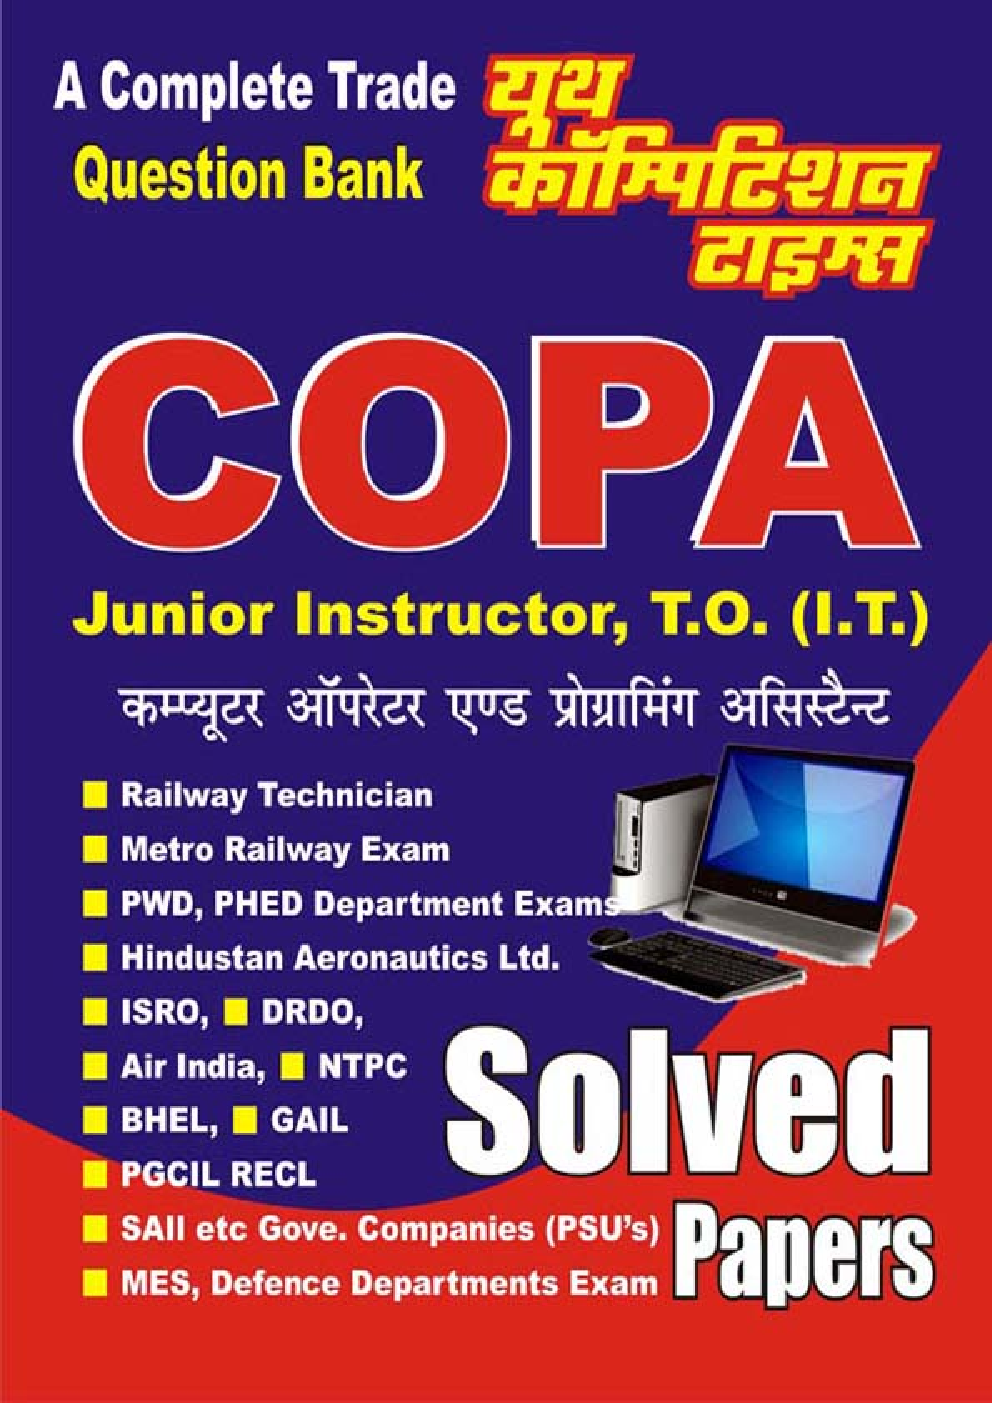 COPA Junior Instructor T.O., IT Solved Papers (In Hindi) - Page 1